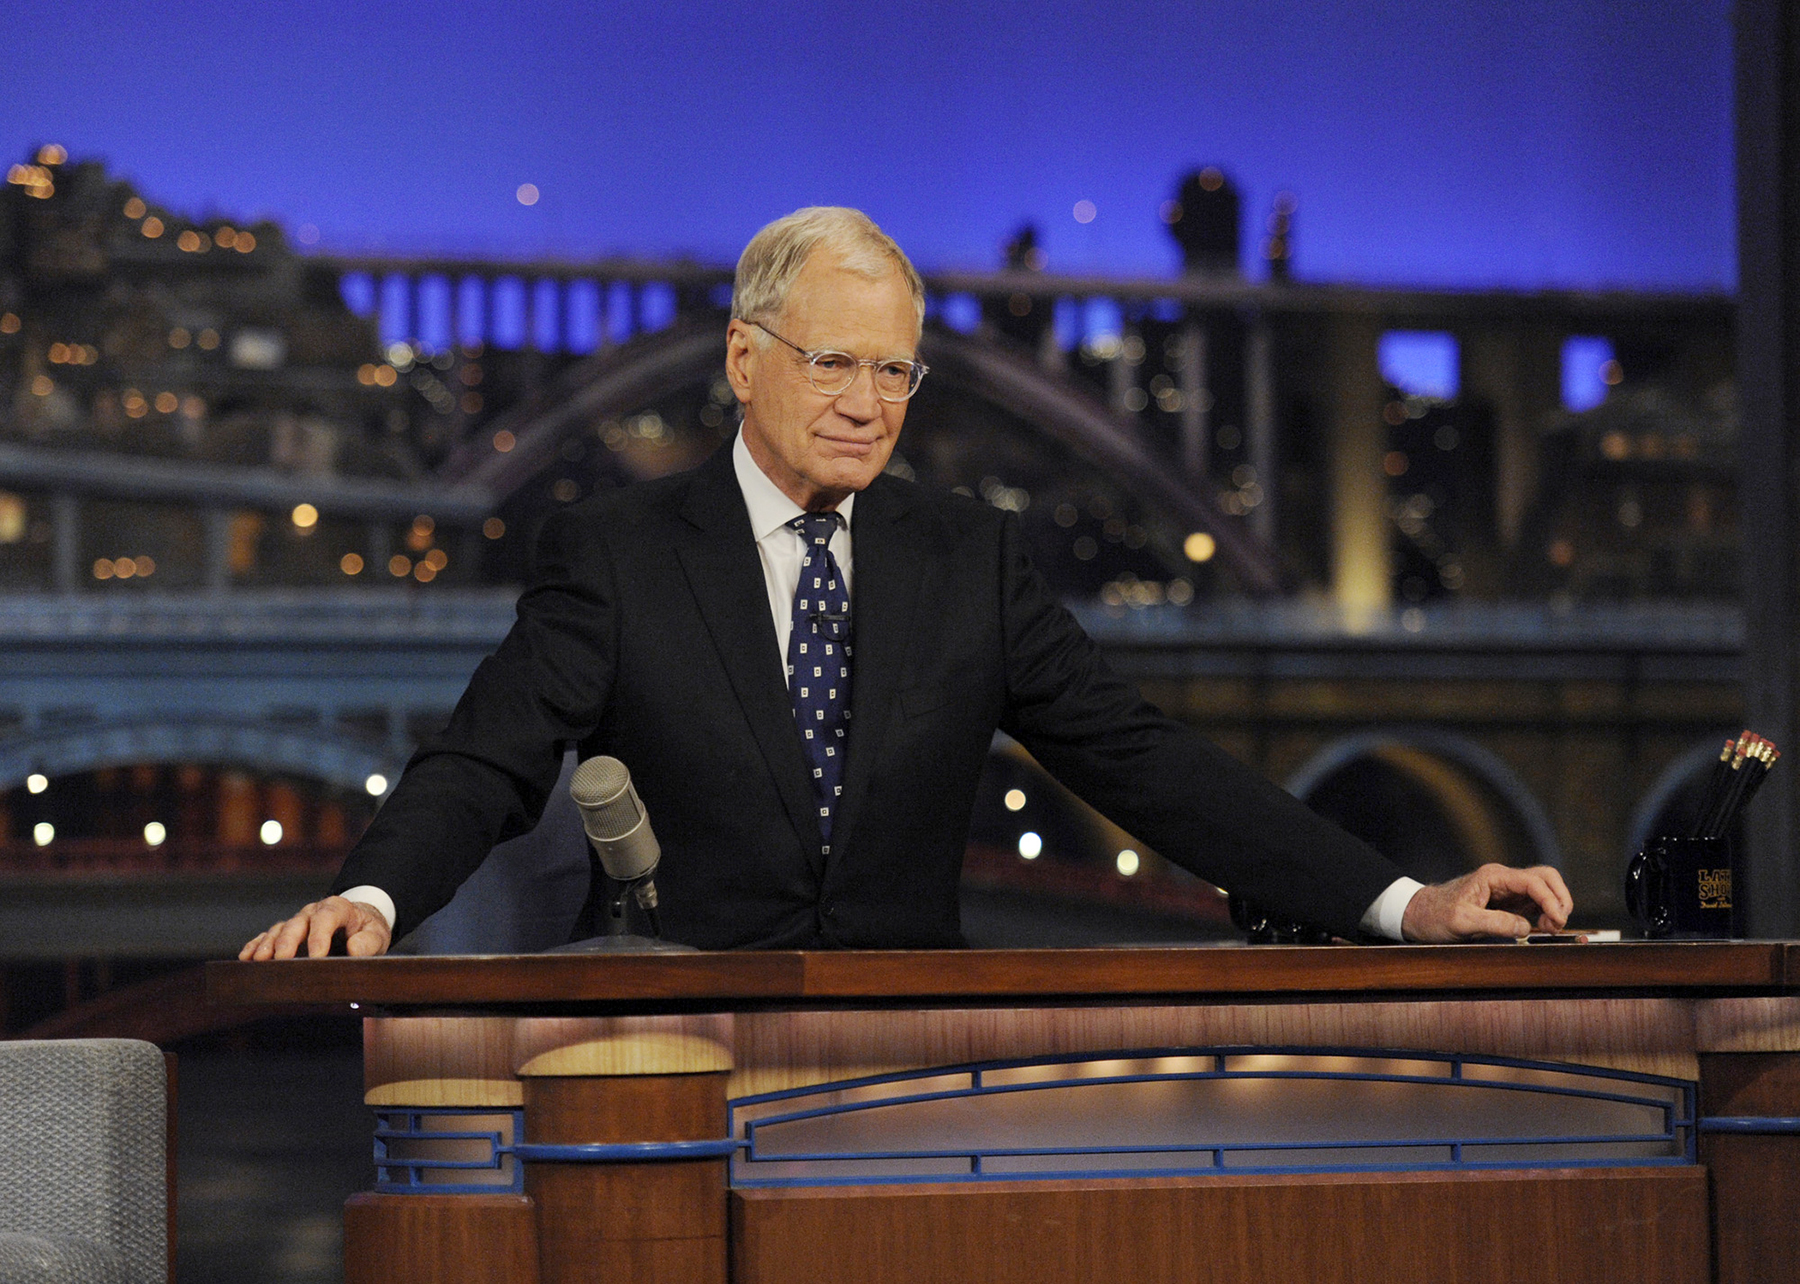 After 33 years in late-night television, 6,028 broadcasts, nearly 20,000 total guest appearances, 16 Emmy Awards and more than 4,600 career Top 10 Lists, David Letterman says goodbye to late-night television audiences. (CBS photo)